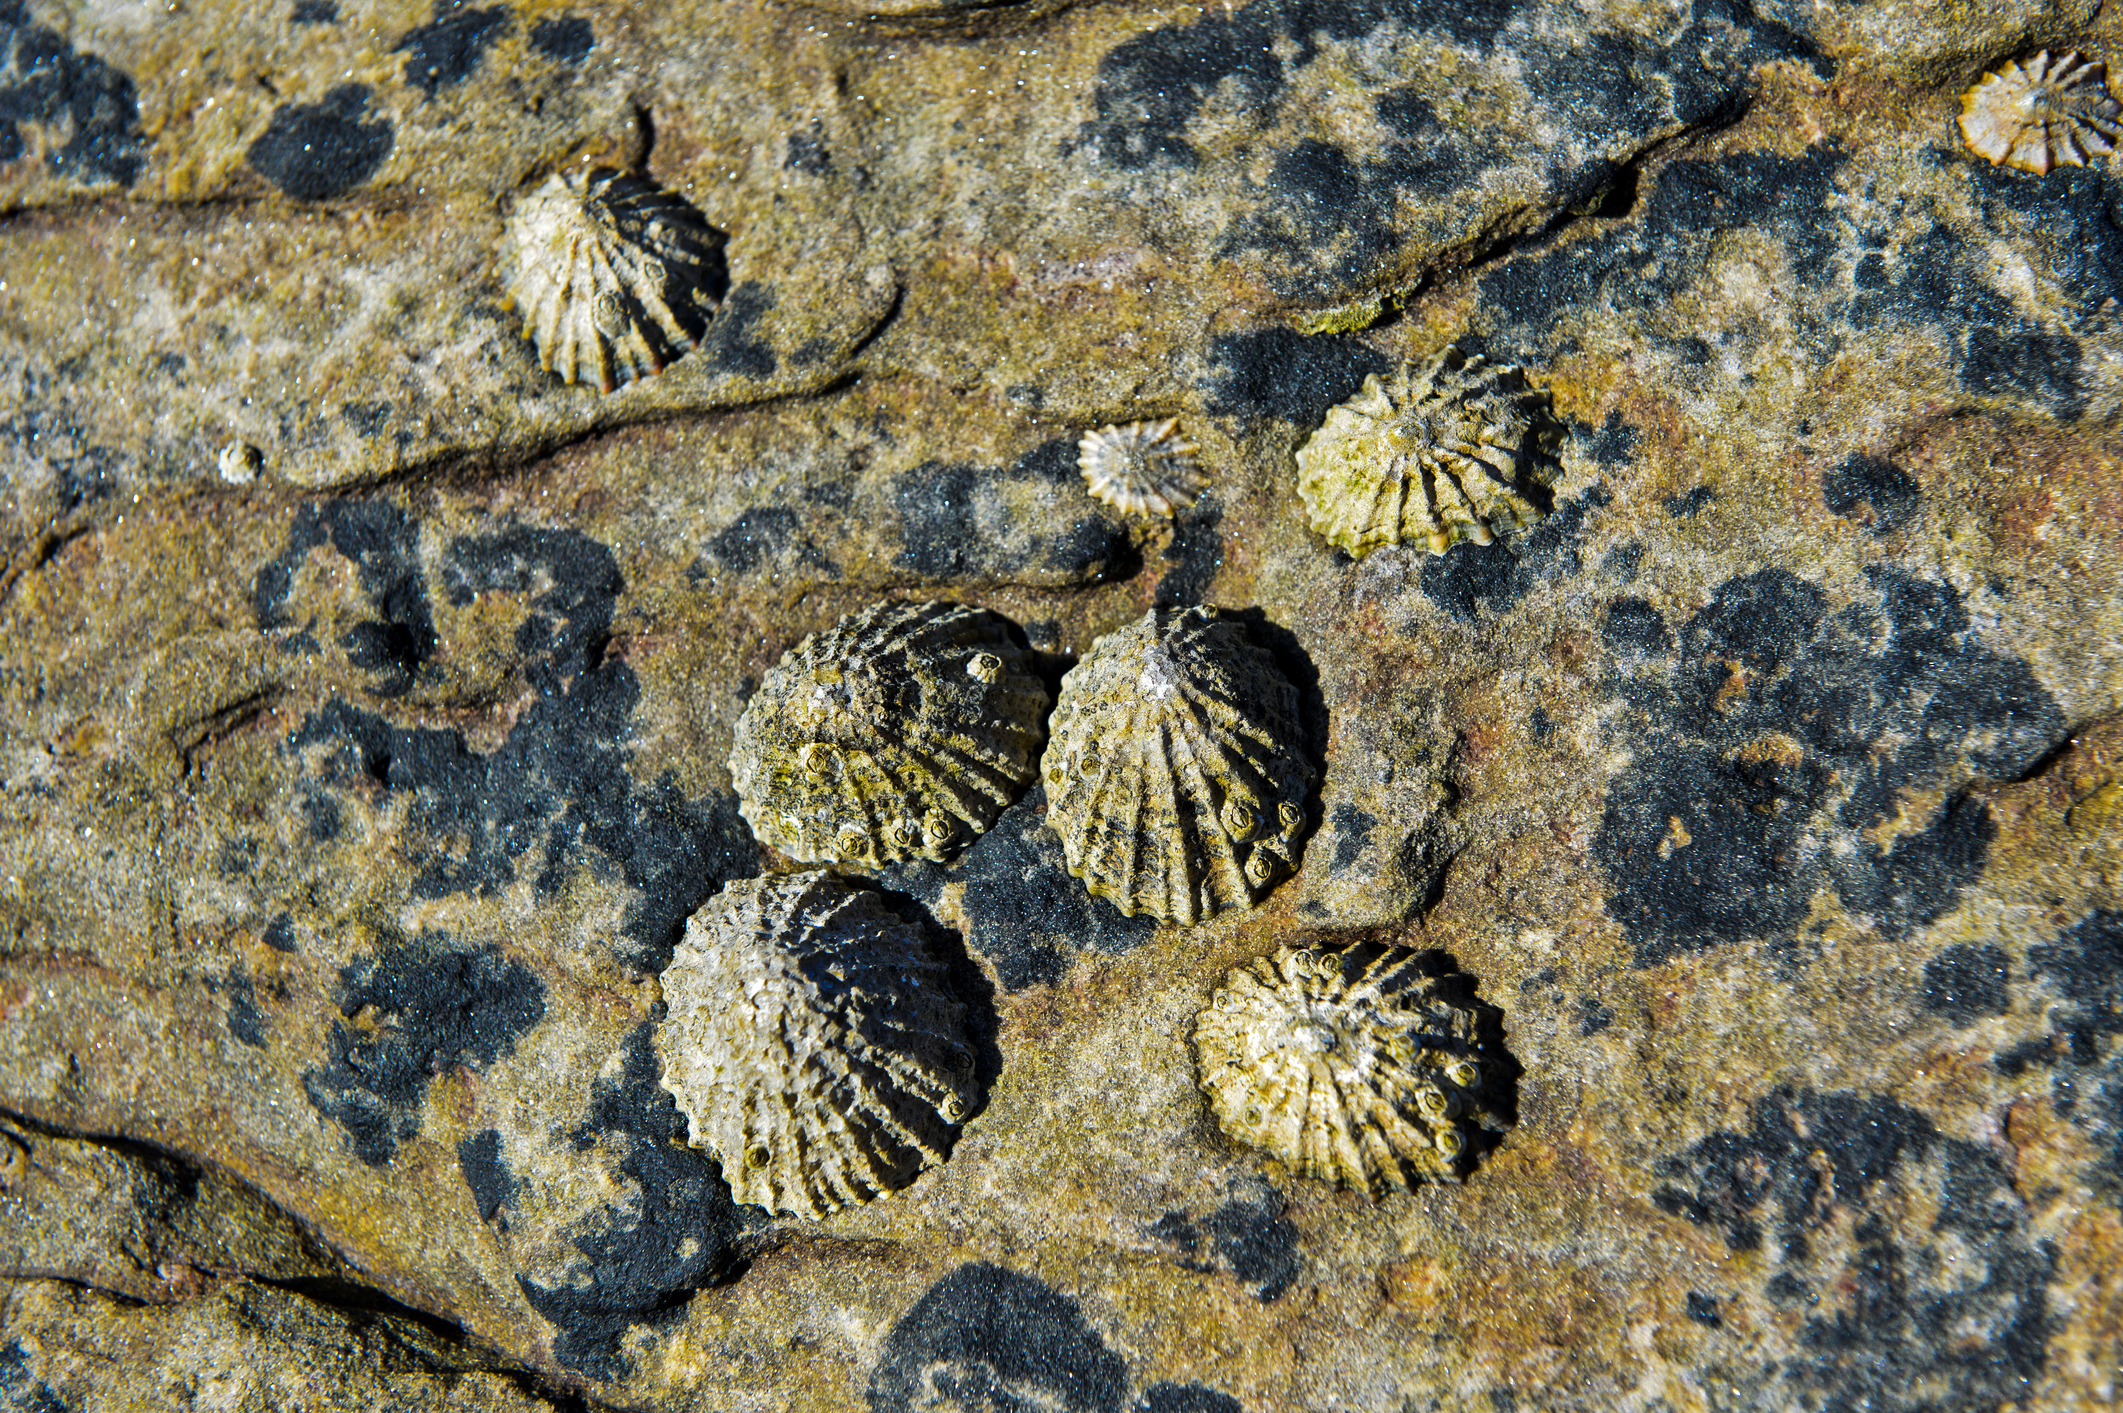 Limpets are like snails, but with a cone-shaped shell (Rebecca Kordas)